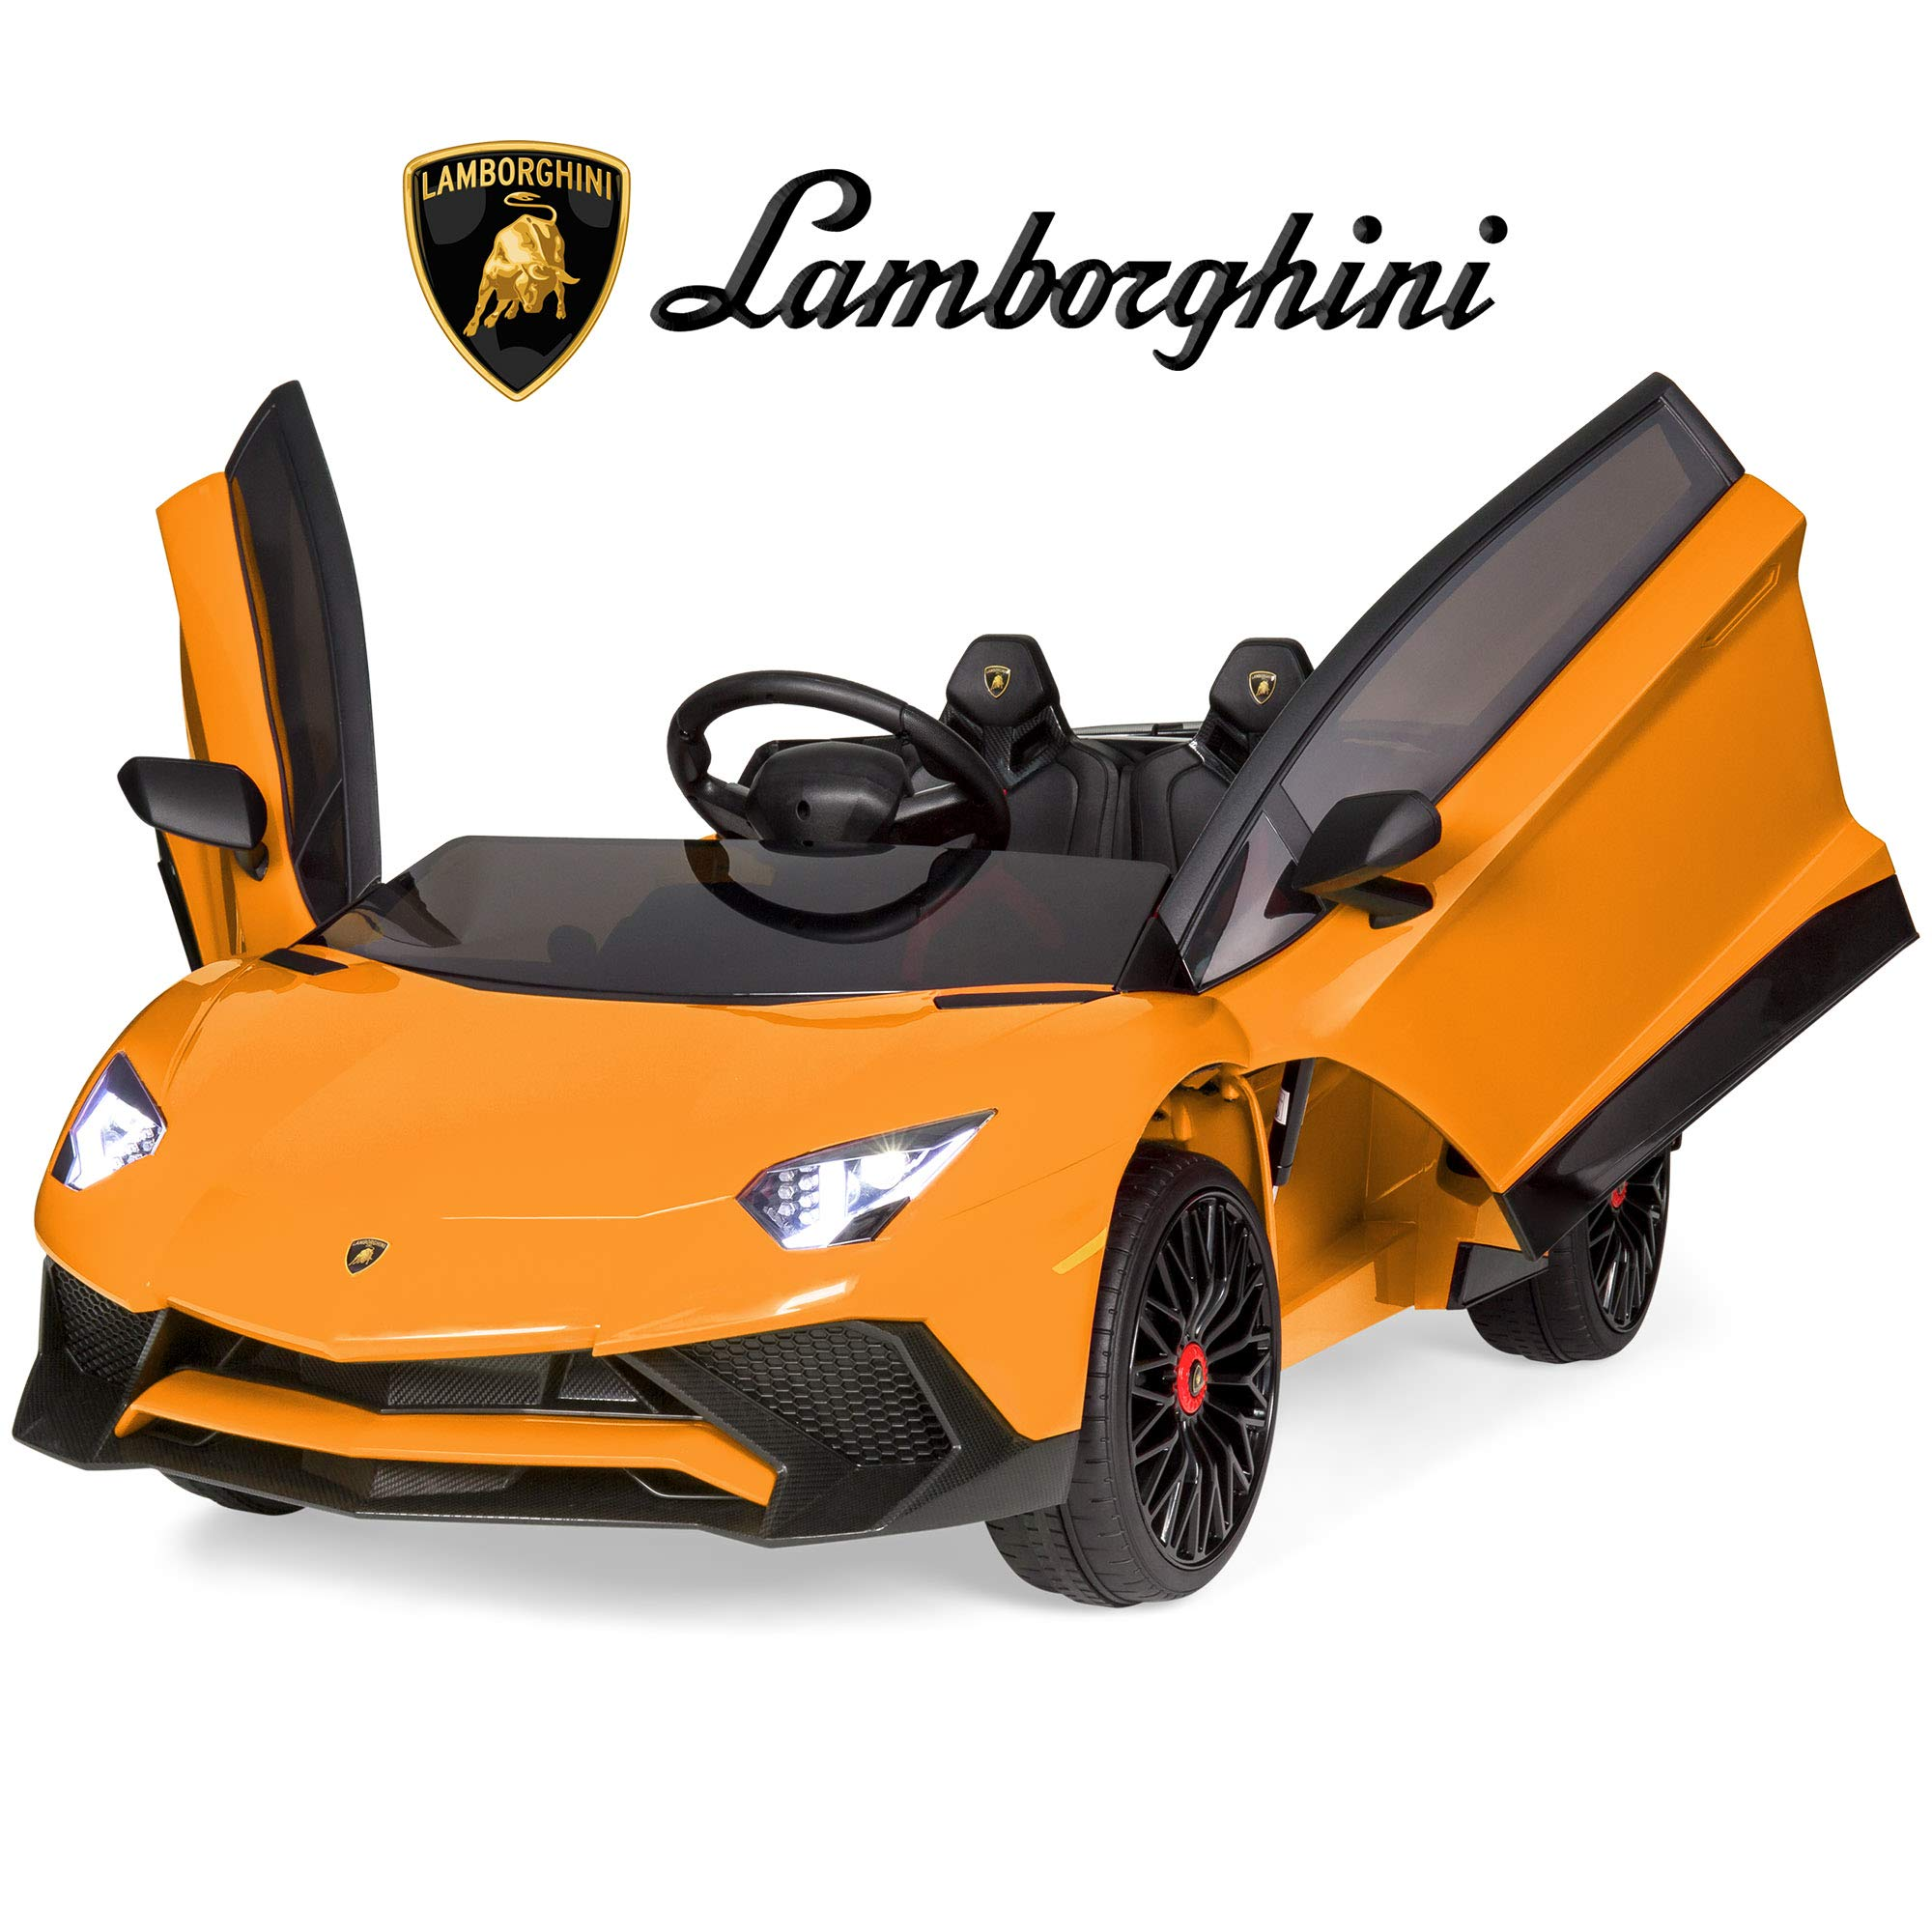 Best Choice Products Kids 12V Ride On Battery Powered Vehicle Lamborghini Aventador SV Sports Car Toy w/ Parent Control, AUX Cable, 2 Speed Options, LED Lights, Music, Horn - Orange